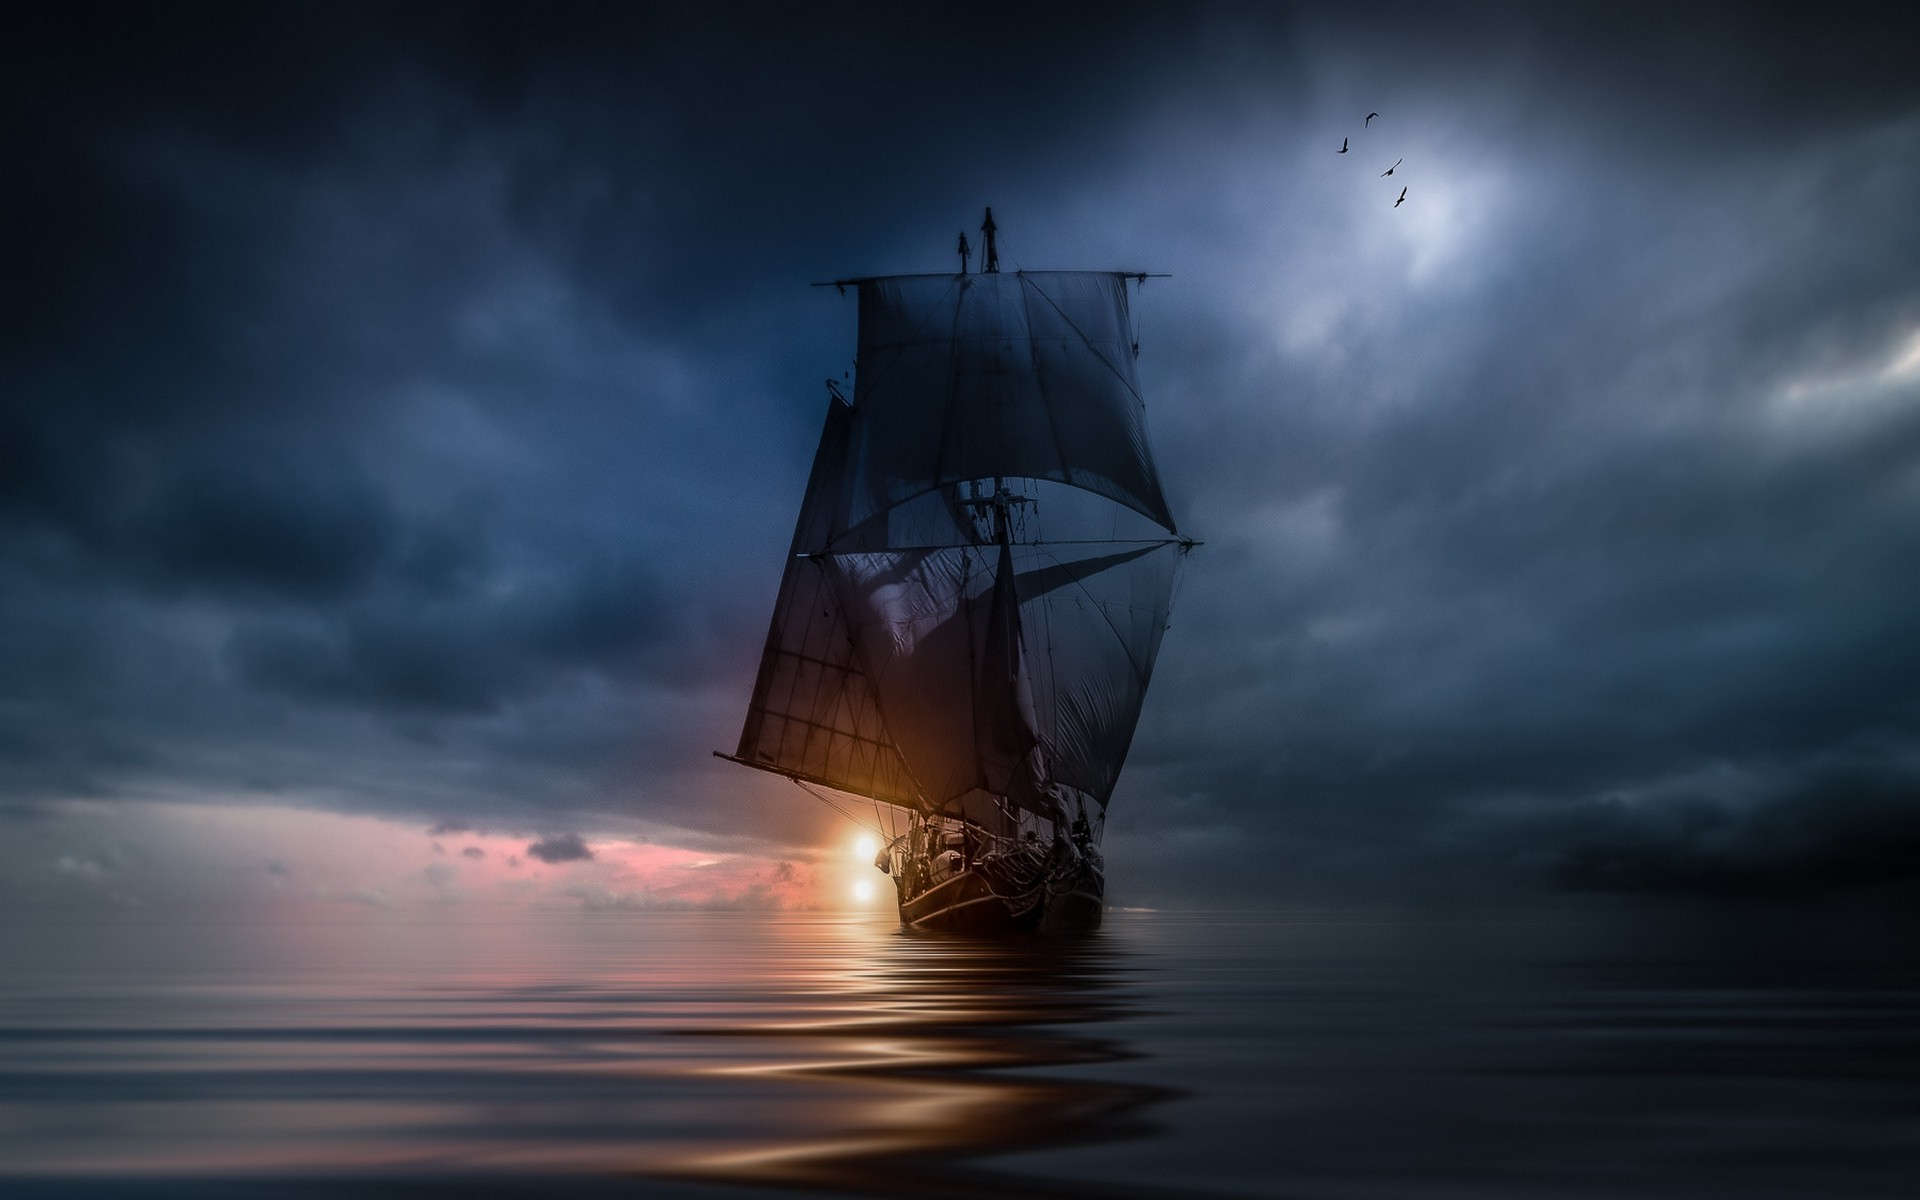 landscape, Nature, Sea, Clouds, Sunset, Sailing Ship, Storm, Blue, Water,  Birds, Flying Wallpapers HD / Desktop and Mobile Backgrounds